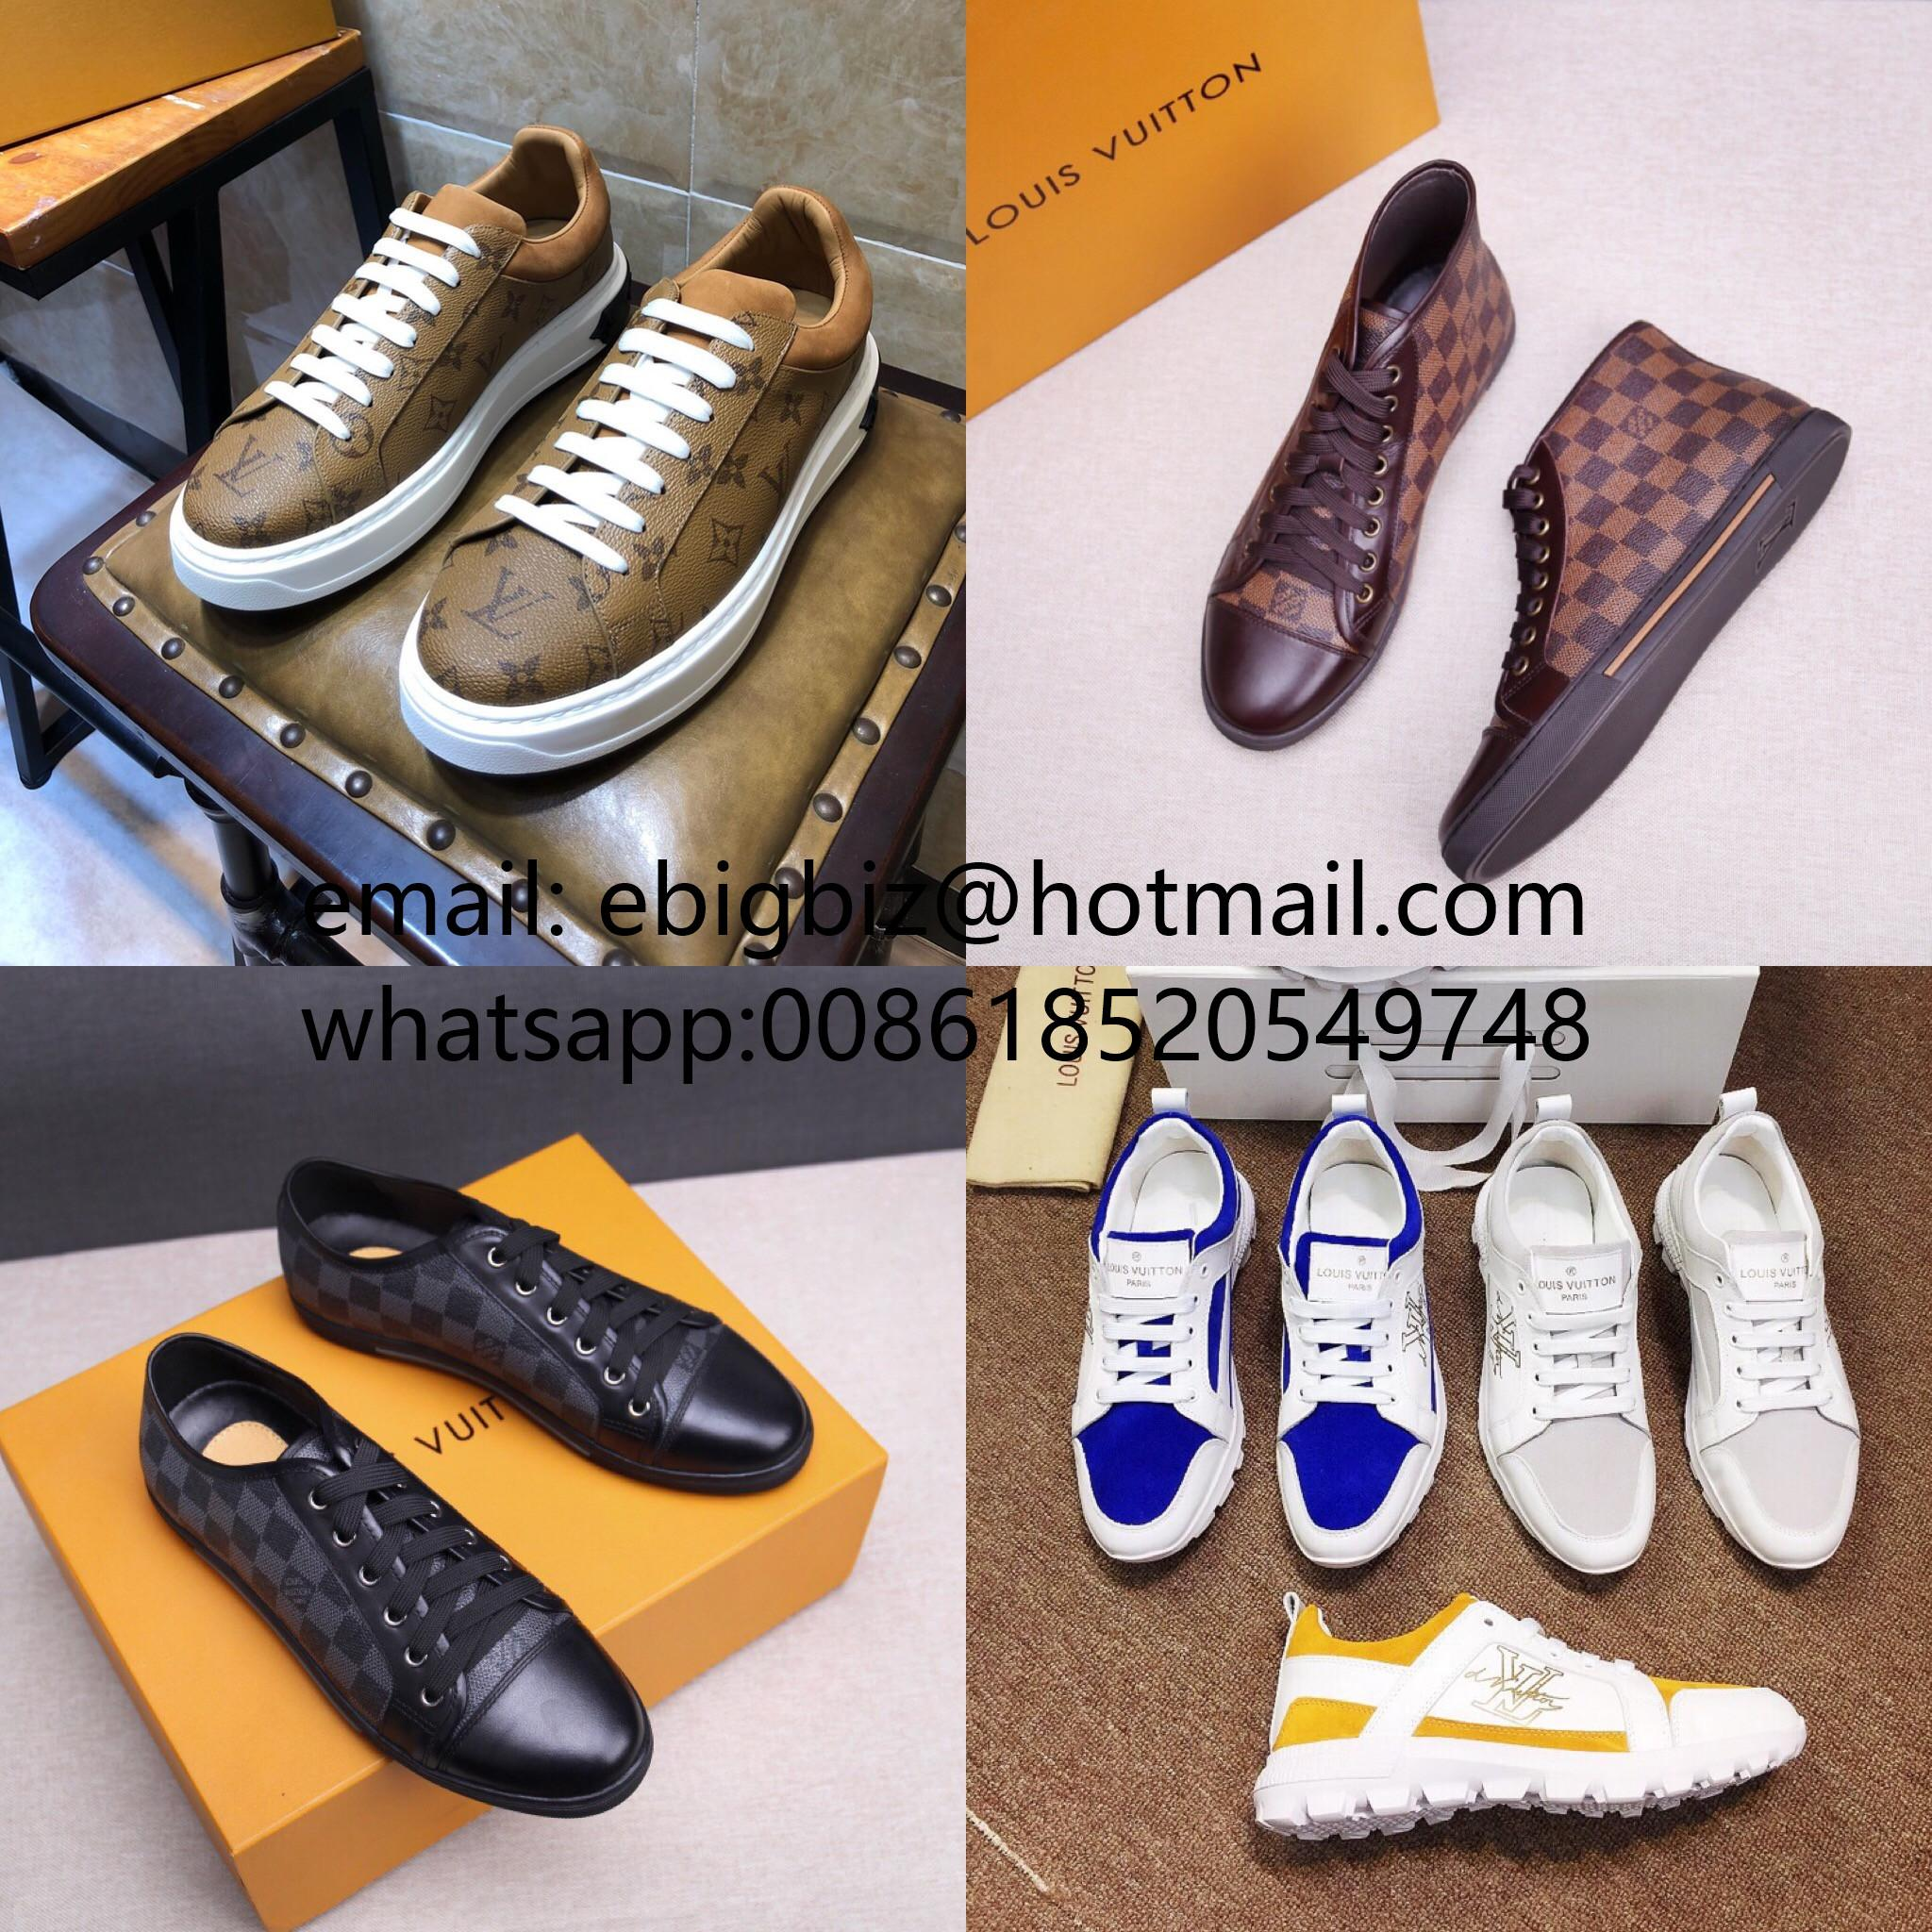 Cheap Louis Vuitton sneakers men Louis Vuitton shoes LV shoes online outlet